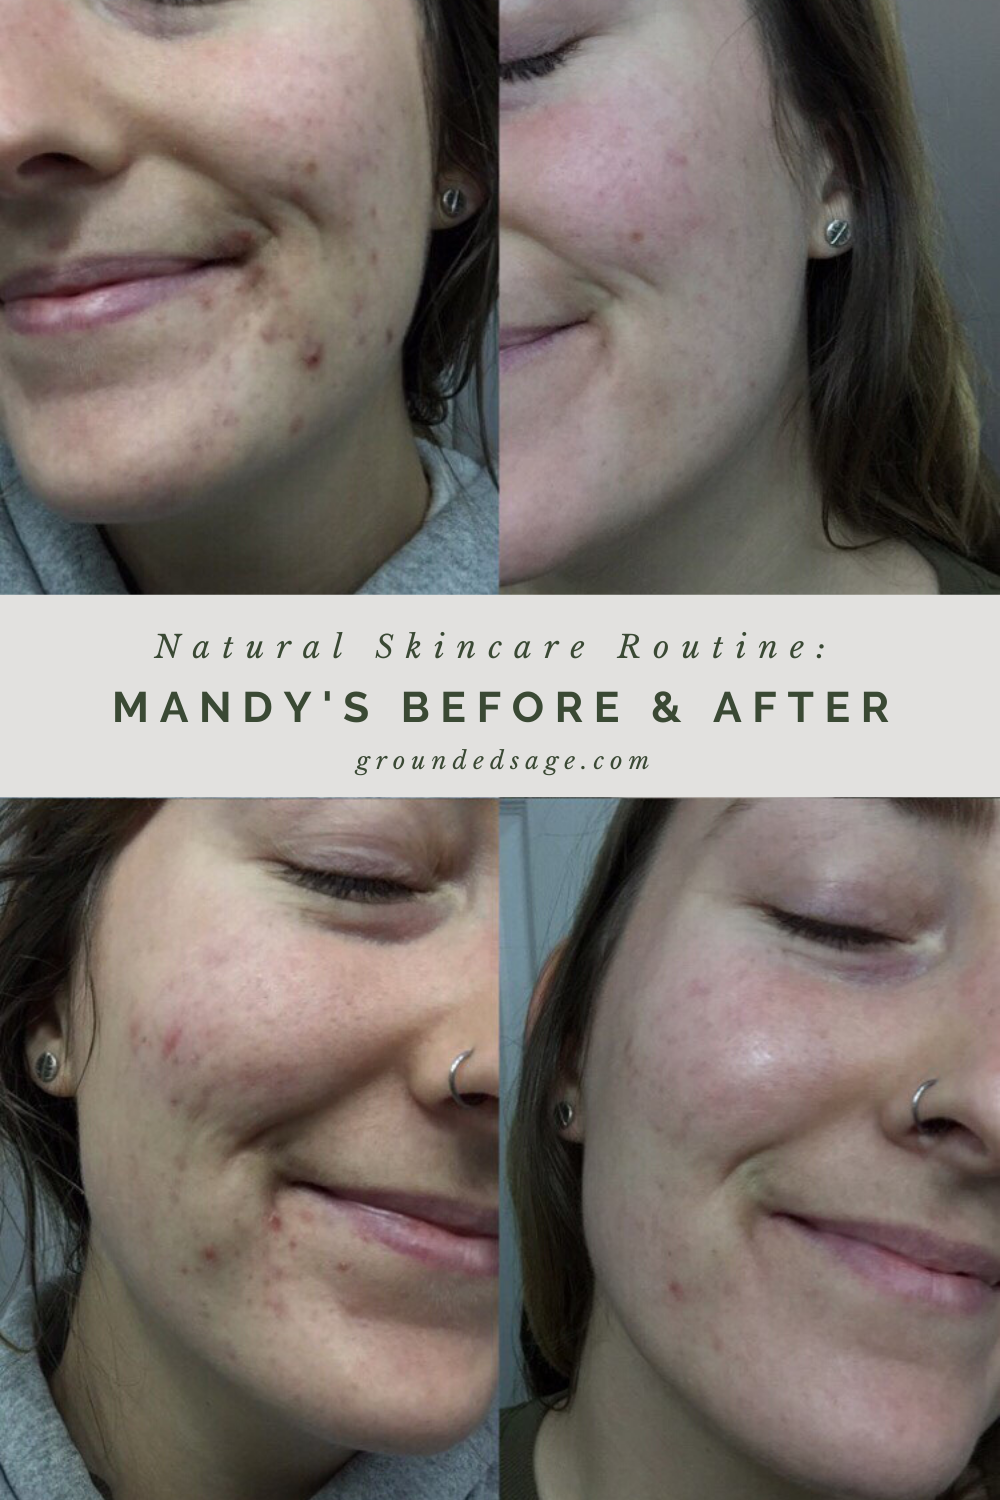 holistic healing natural skincare routine for acne before and after